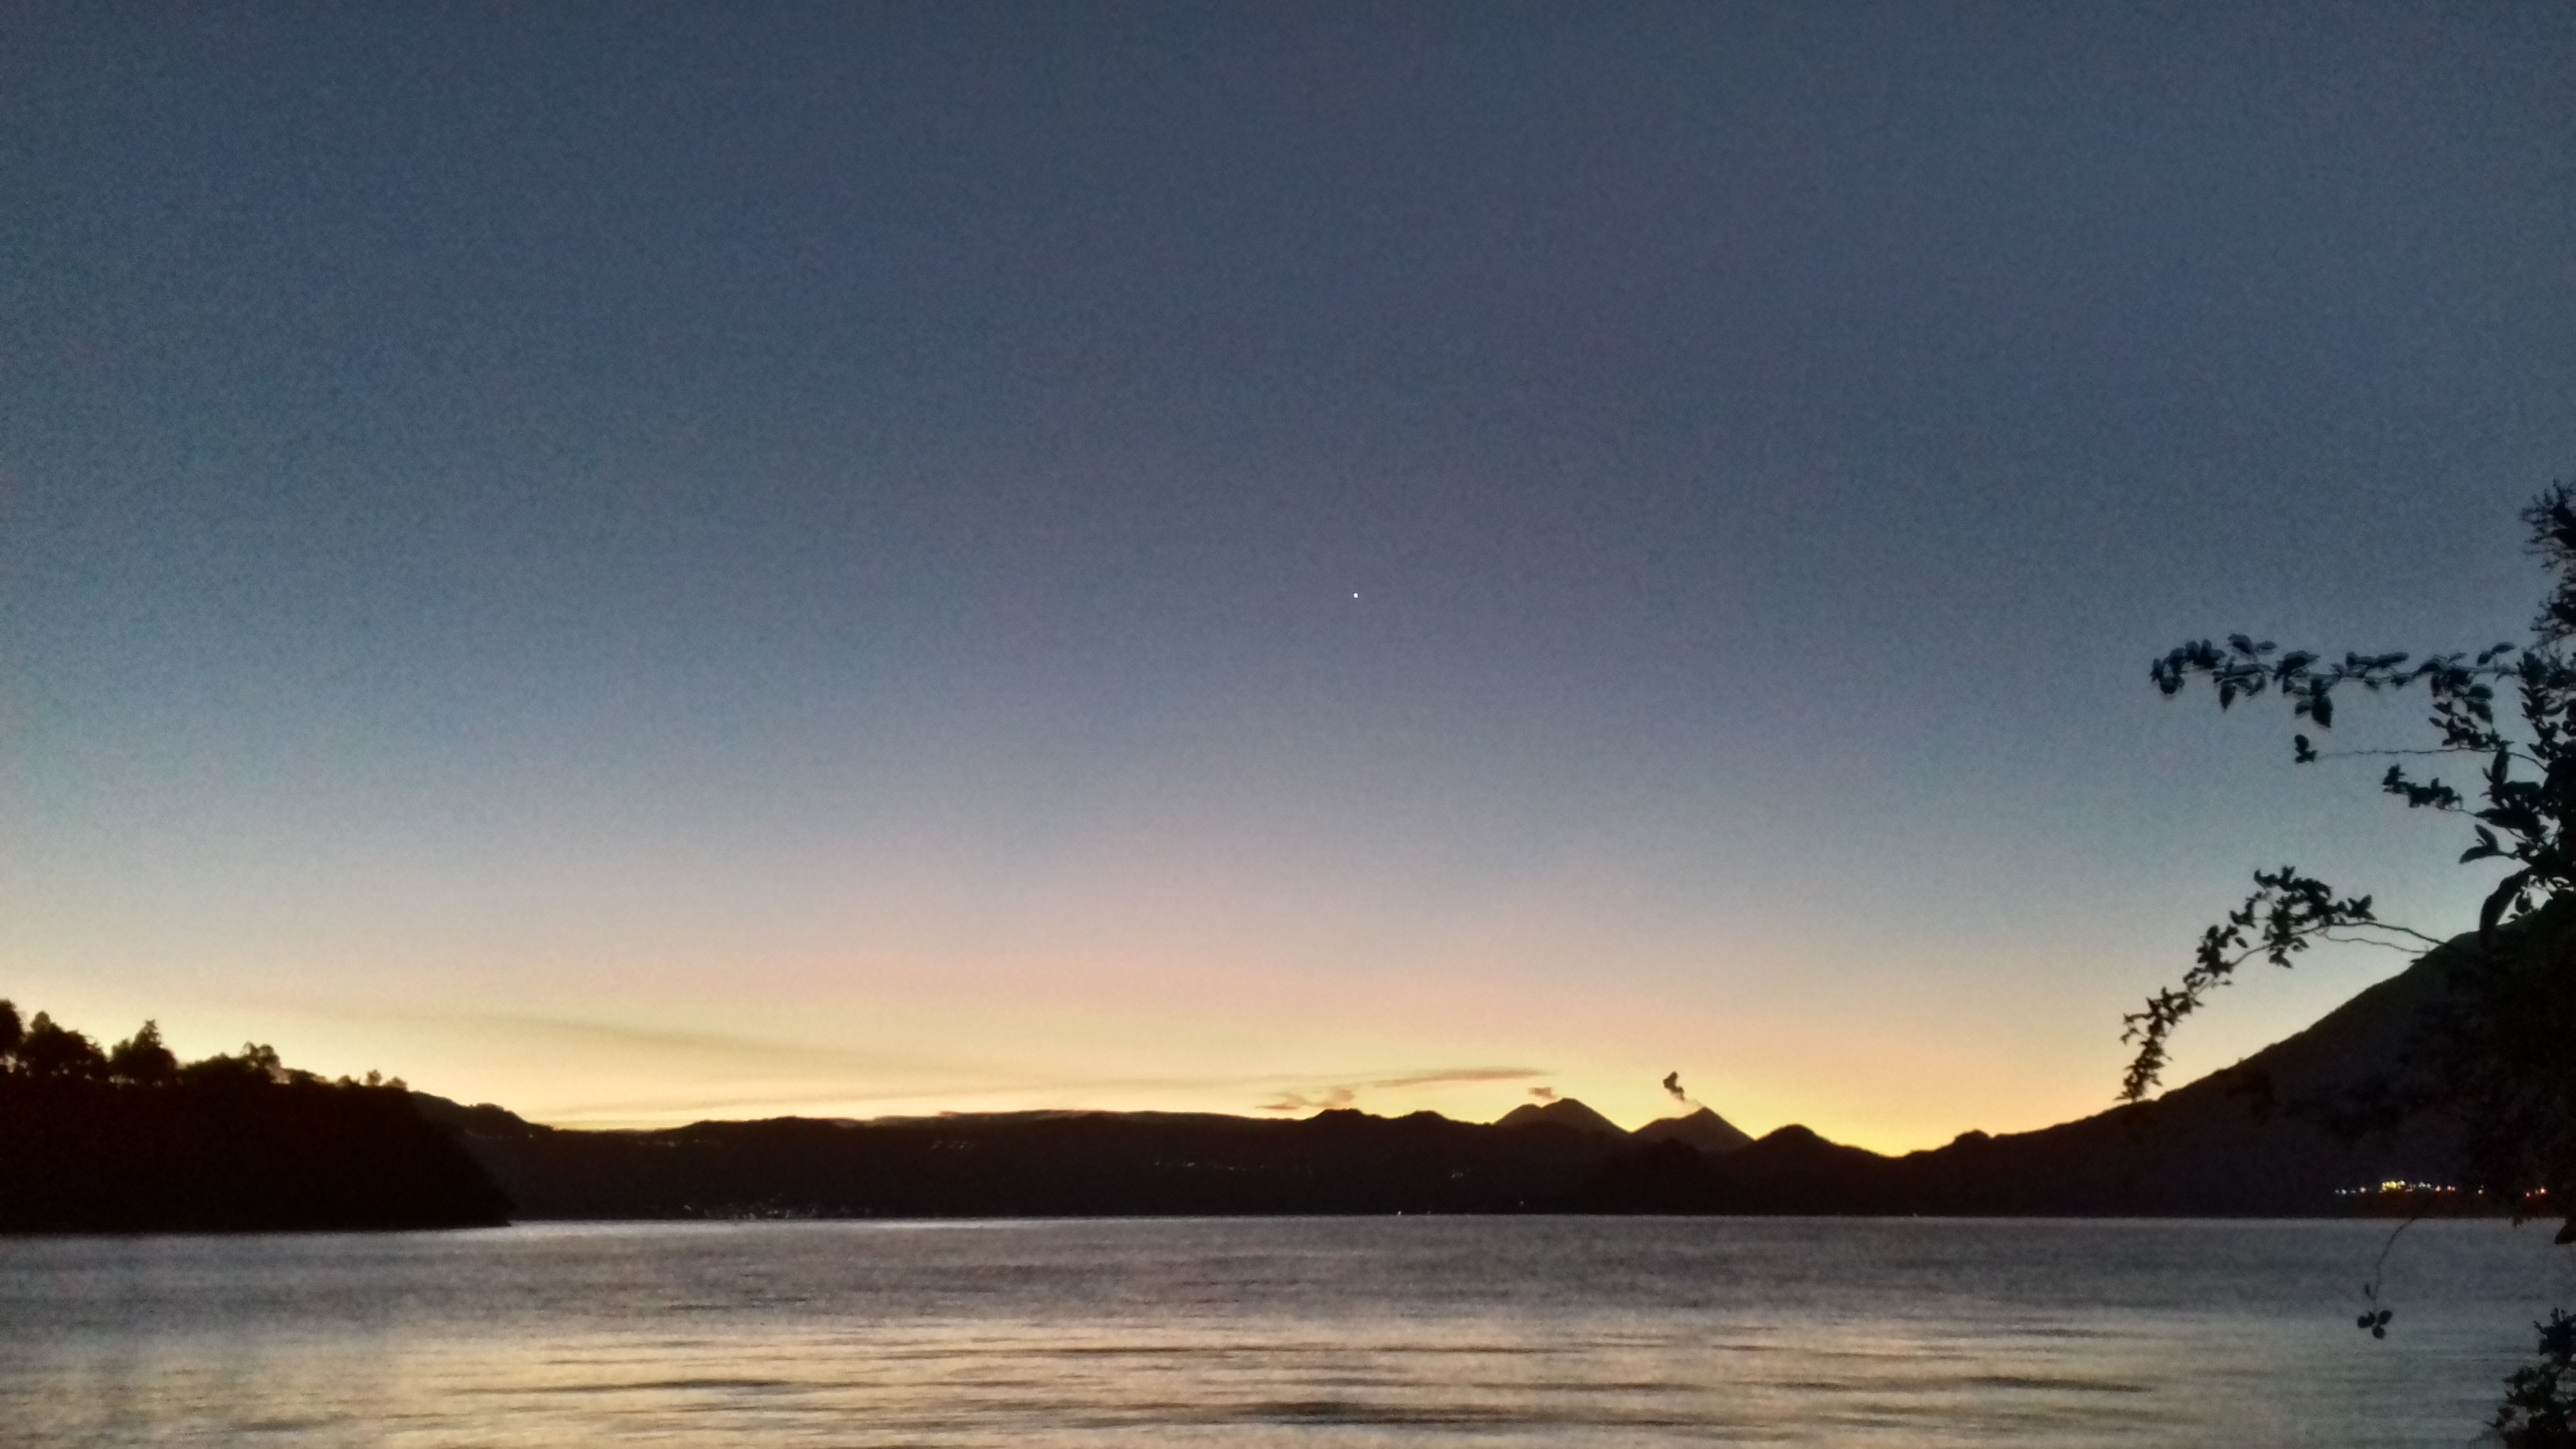 Dawn over Lake Atitlan, 21st February 2016, as seen from the garden of The Four Pillars, San Pablo La Laguna. Picture by Mark Elmy